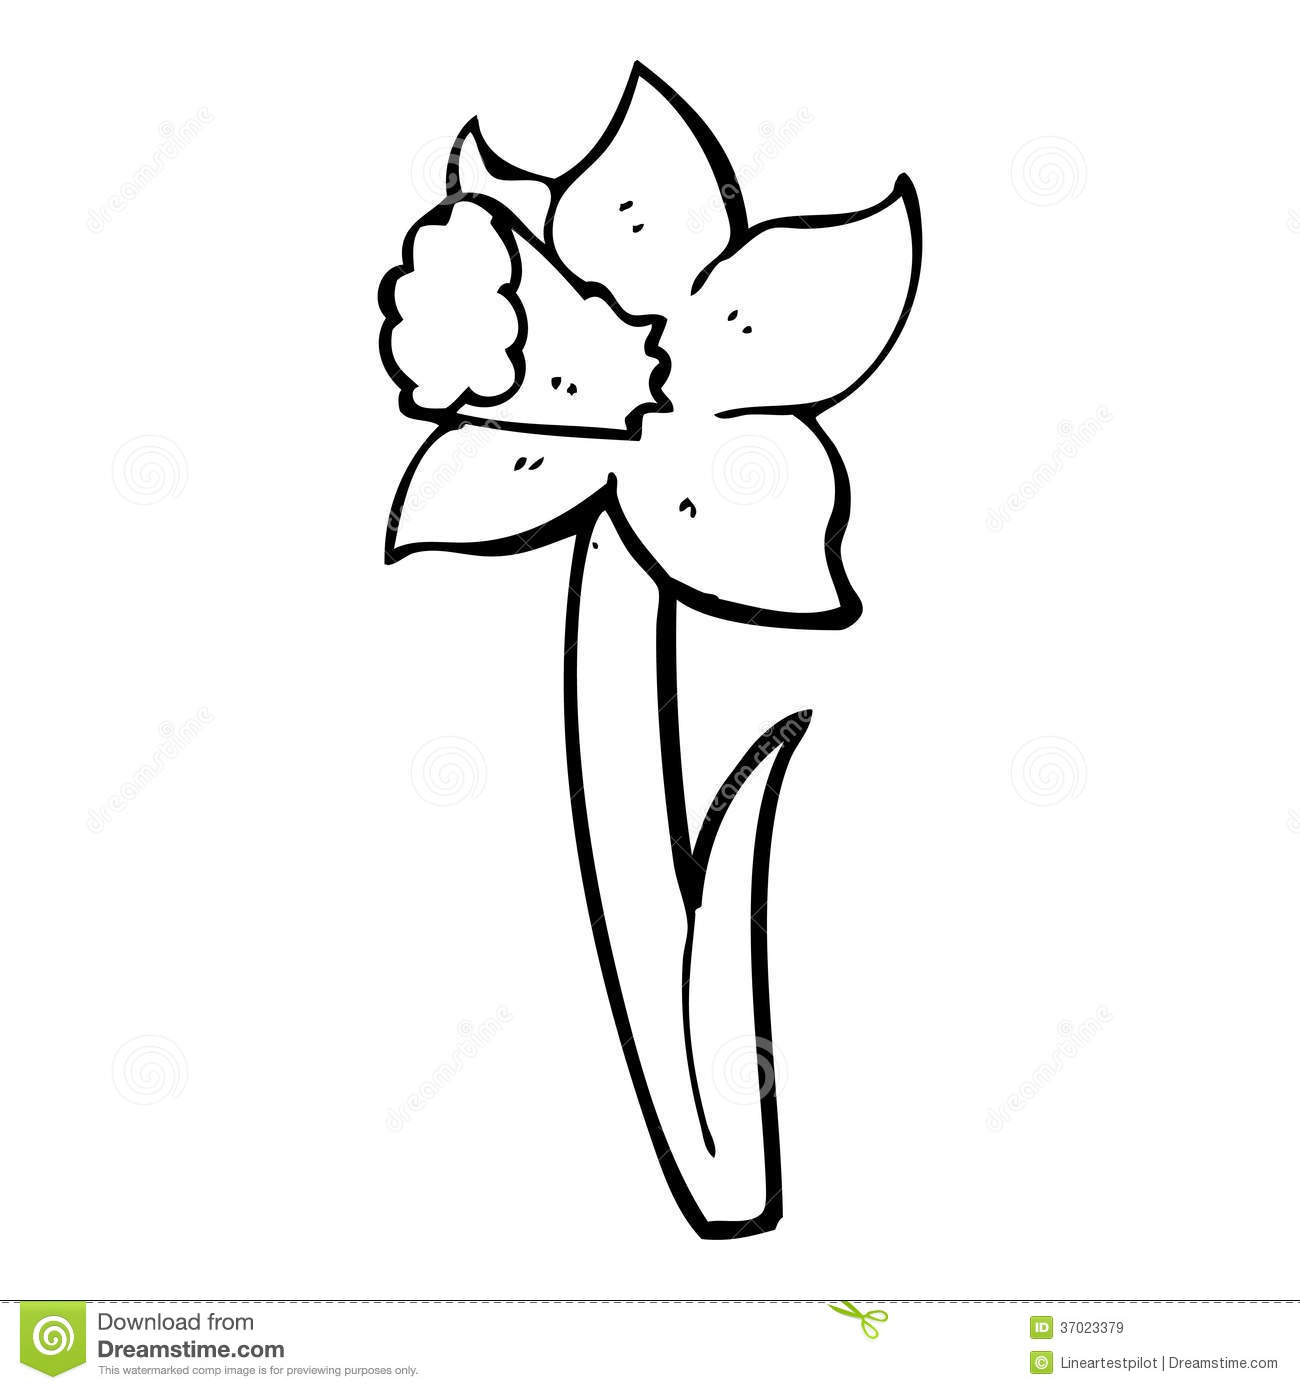 eletragesi: Daffodil Clipart Black And White Images